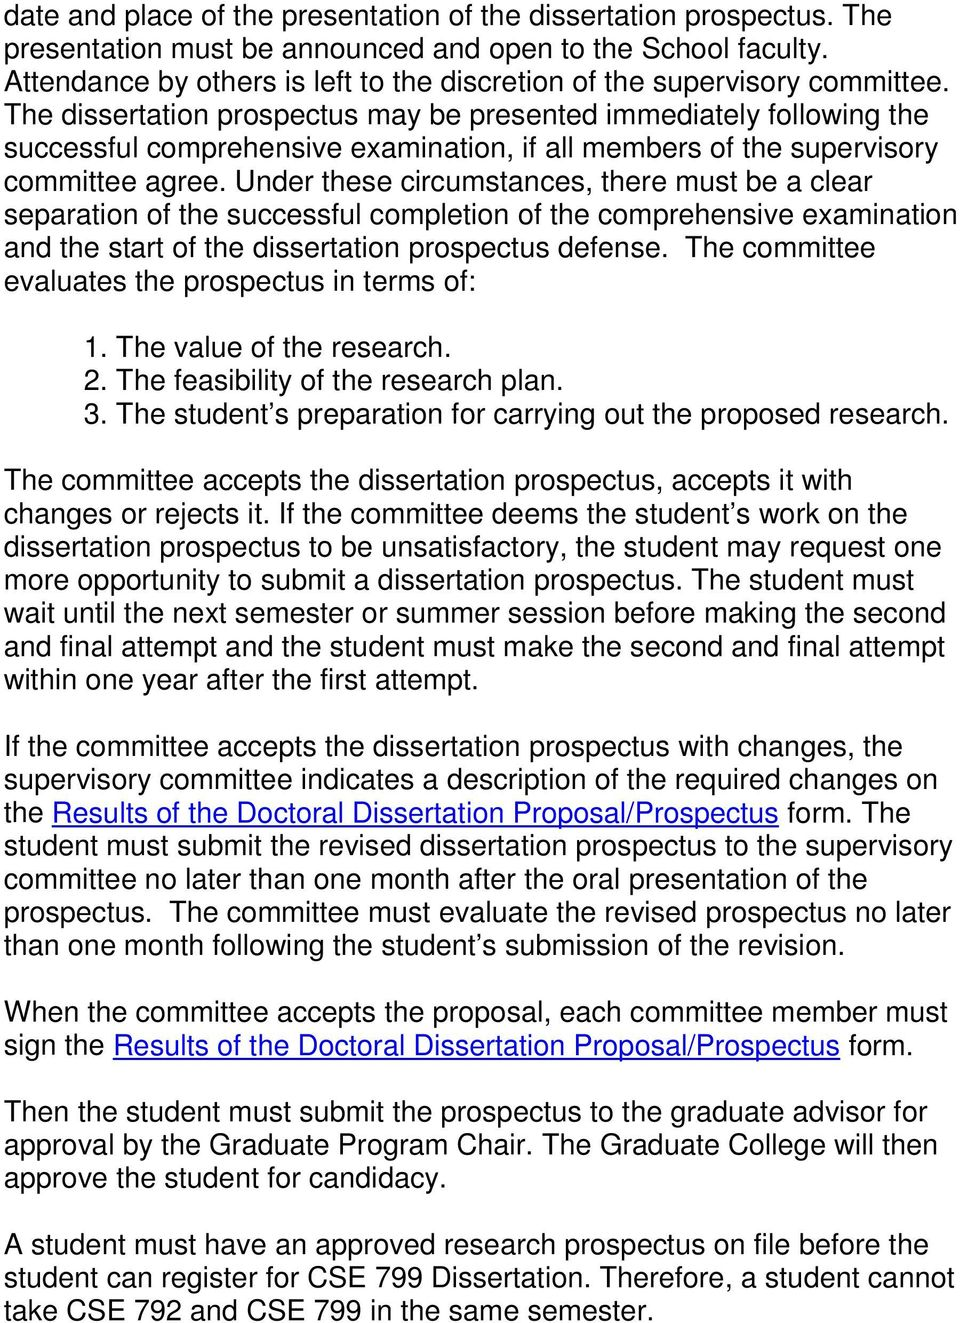 The dissertation prospectus may be presented immediately following the successful comprehensive examination, if all members of the supervisory committee agree.